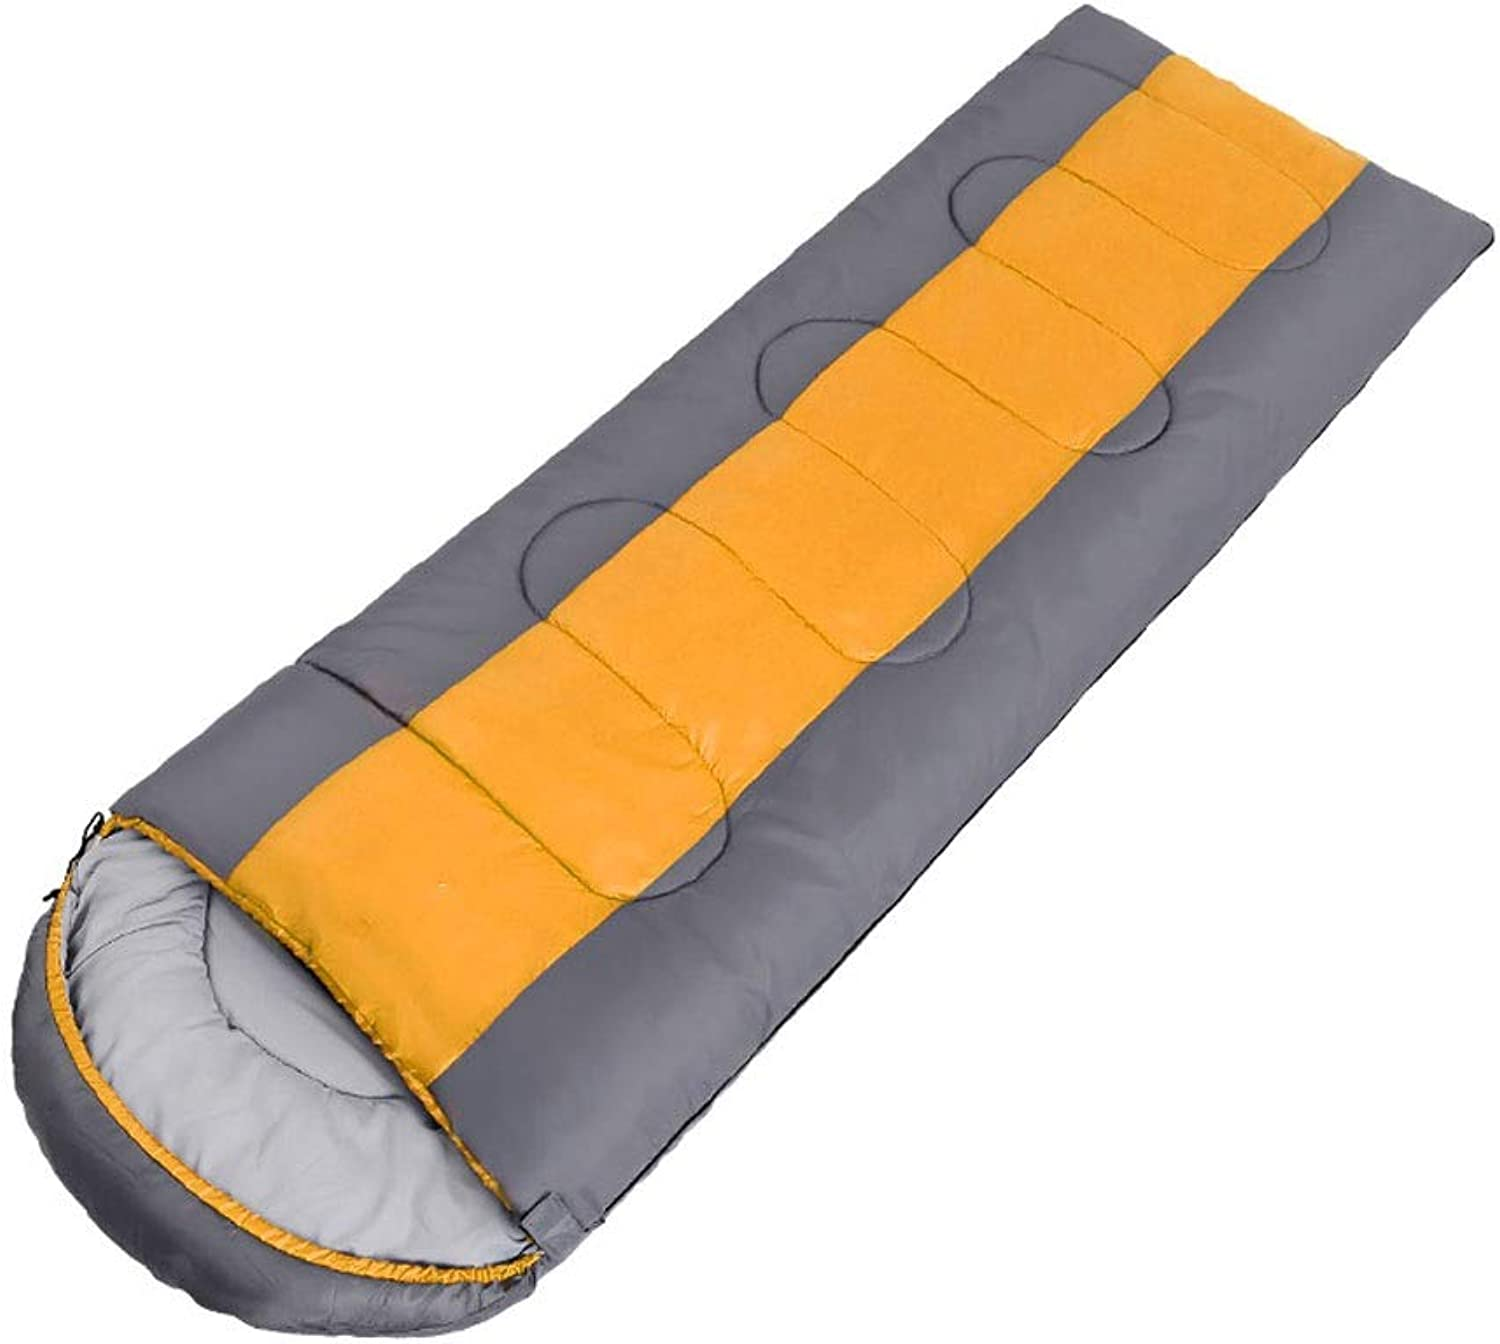 Upgrade can be Stitched to Reach The Sleeping Bag Adults Outdoor Travel Camping Spring and Summer Thick Warm Men and Women Office Lunch Break Indoor Adult Sleeping Bag